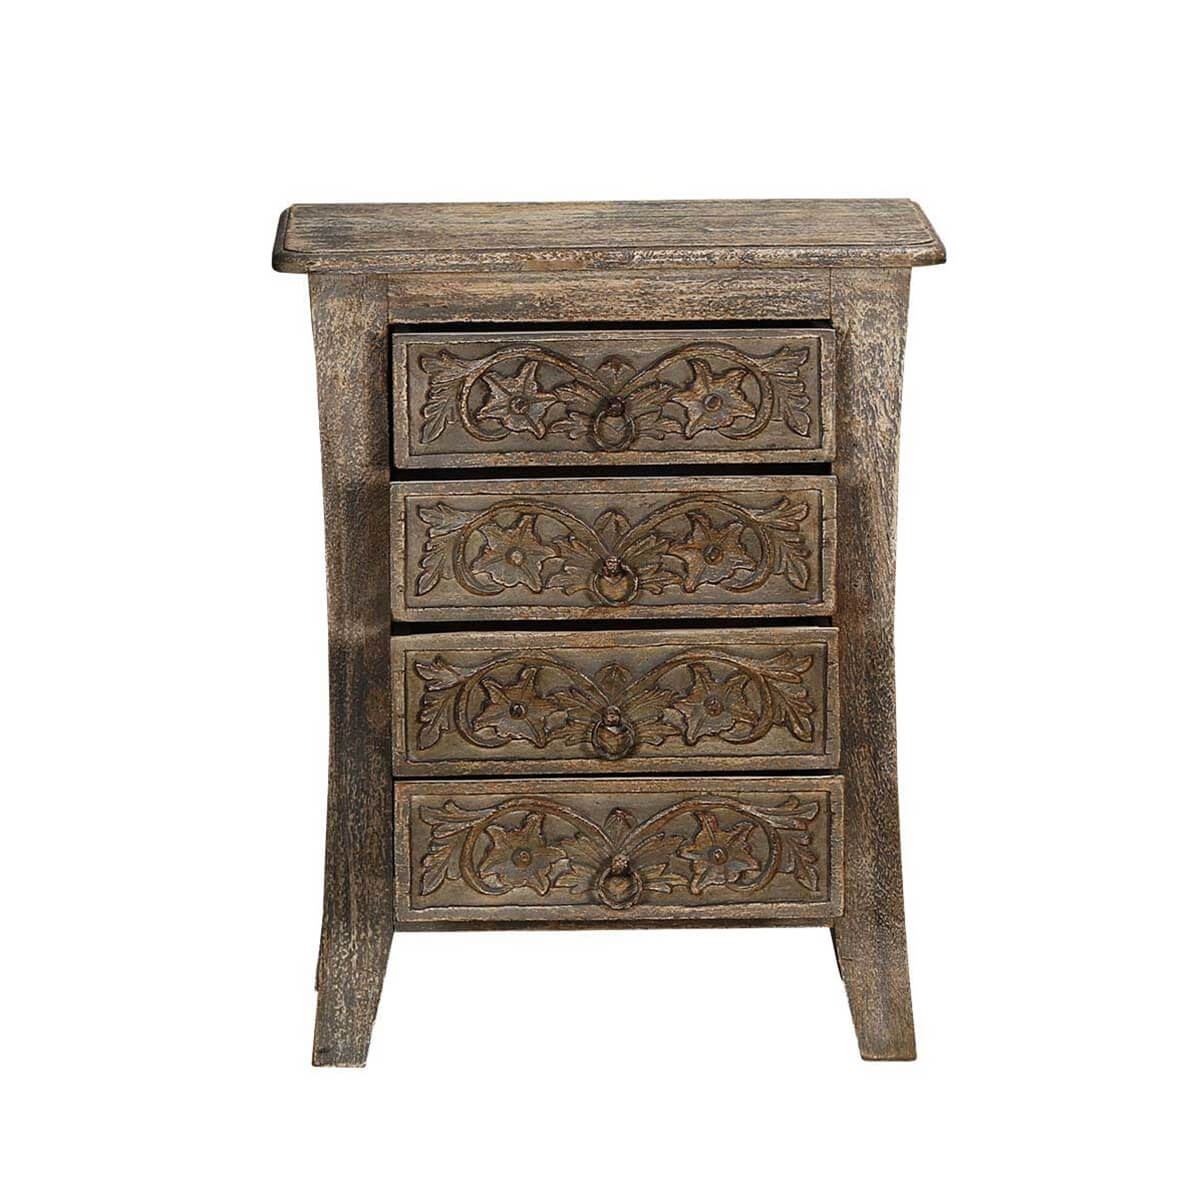 Palazzo handcrafted rustic solid wood 4 drawer nightstand for Rustic nightstands